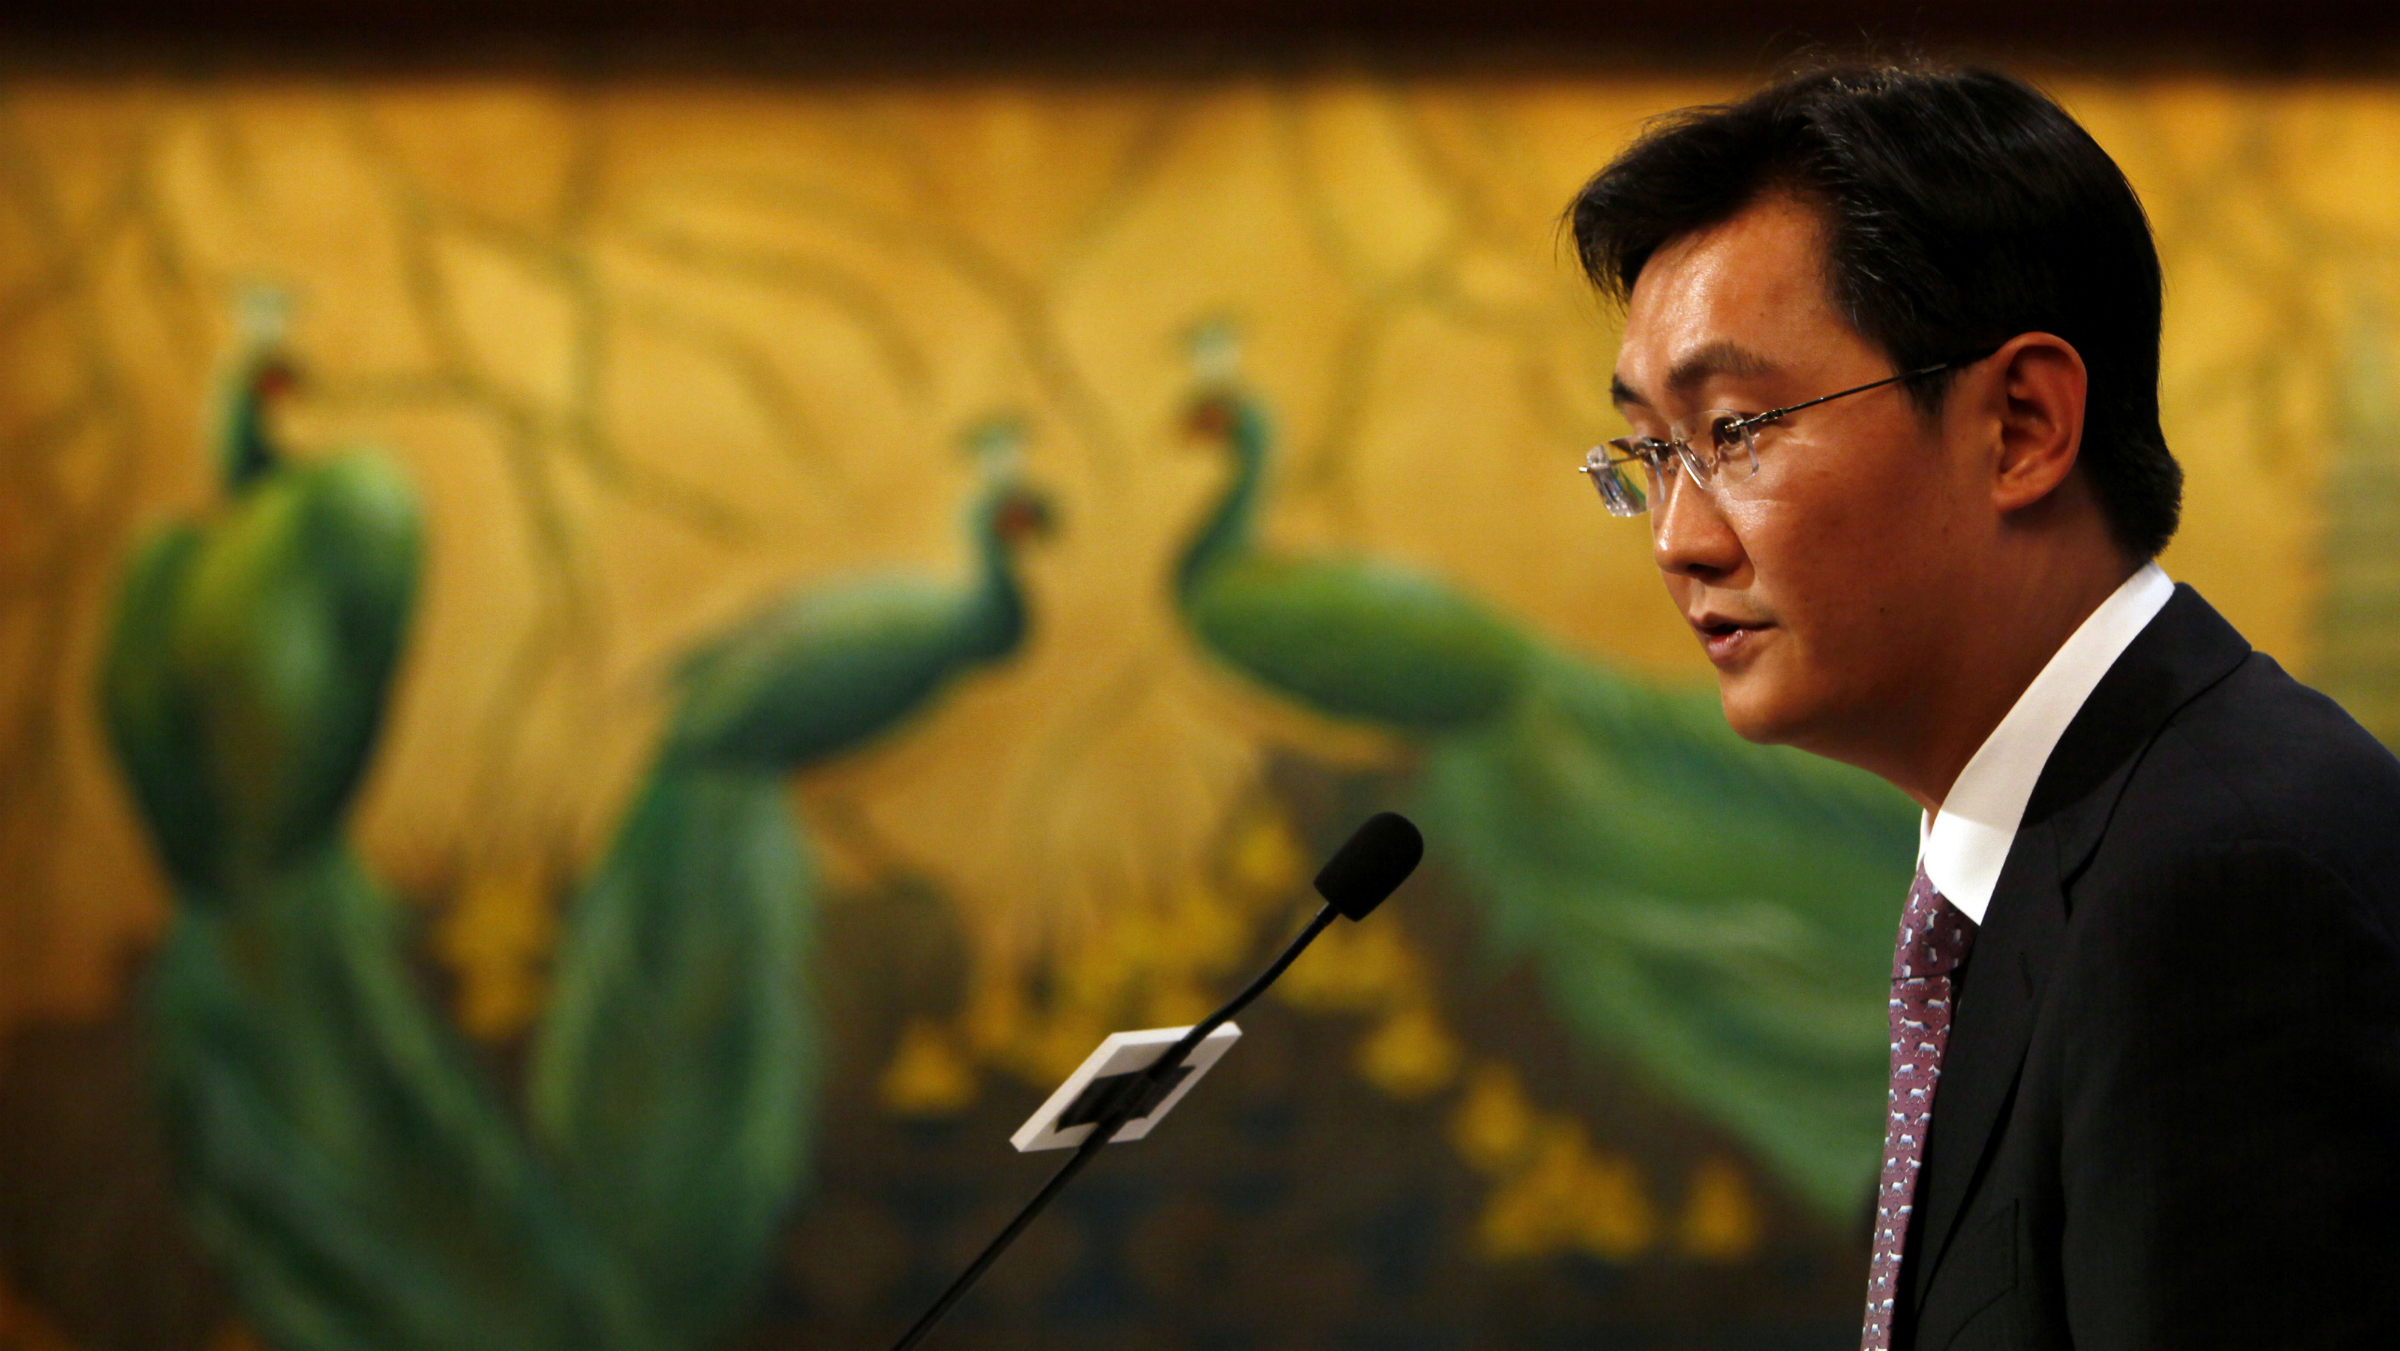 Pony Ma, chairman and CEO of Tencent Holdings Ltd., speaks during the news conference for the 2009 fourth quarter and annual company result announcement in Hong Kong Wednesday, March 17, 2010. Tencent, a leading provider of Internet and mobile and telecommunications services in China, announced their profit for the year was RMB5,221.6 million (US$764.7 million), an increase of 85.4% year on year. (AP Photo/Kin Cheung